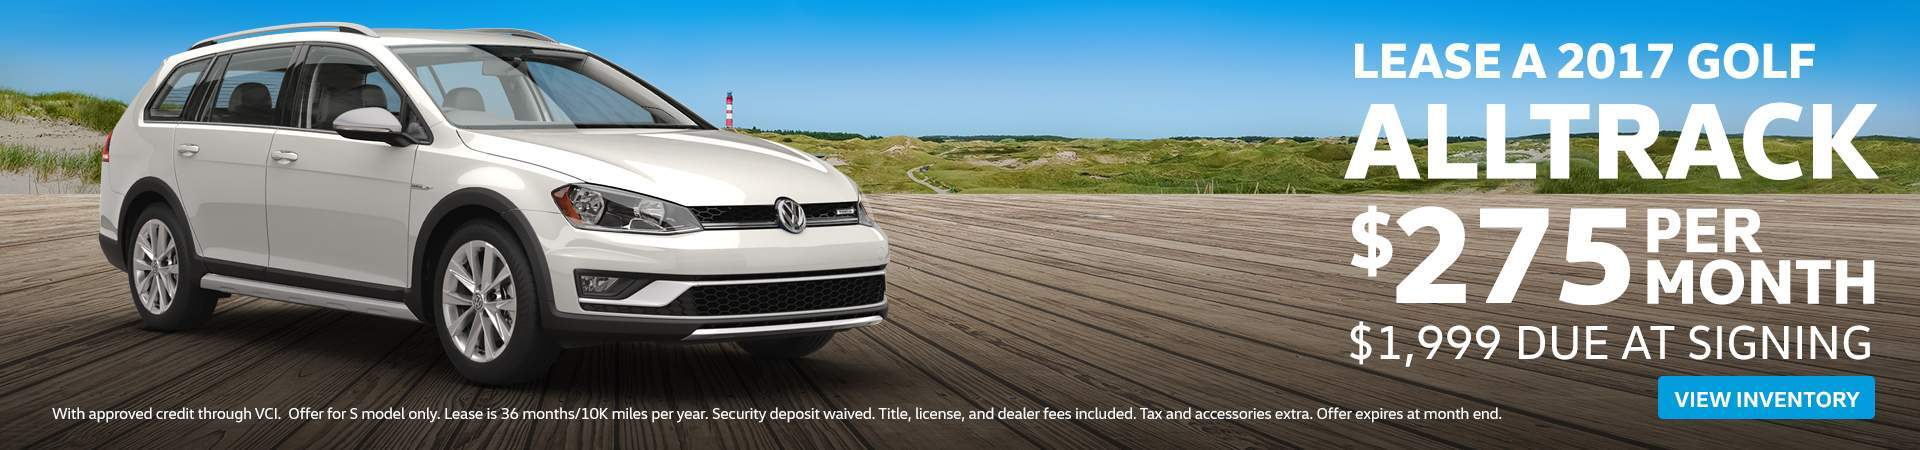 Volkswagen Golf Alltrack Lease